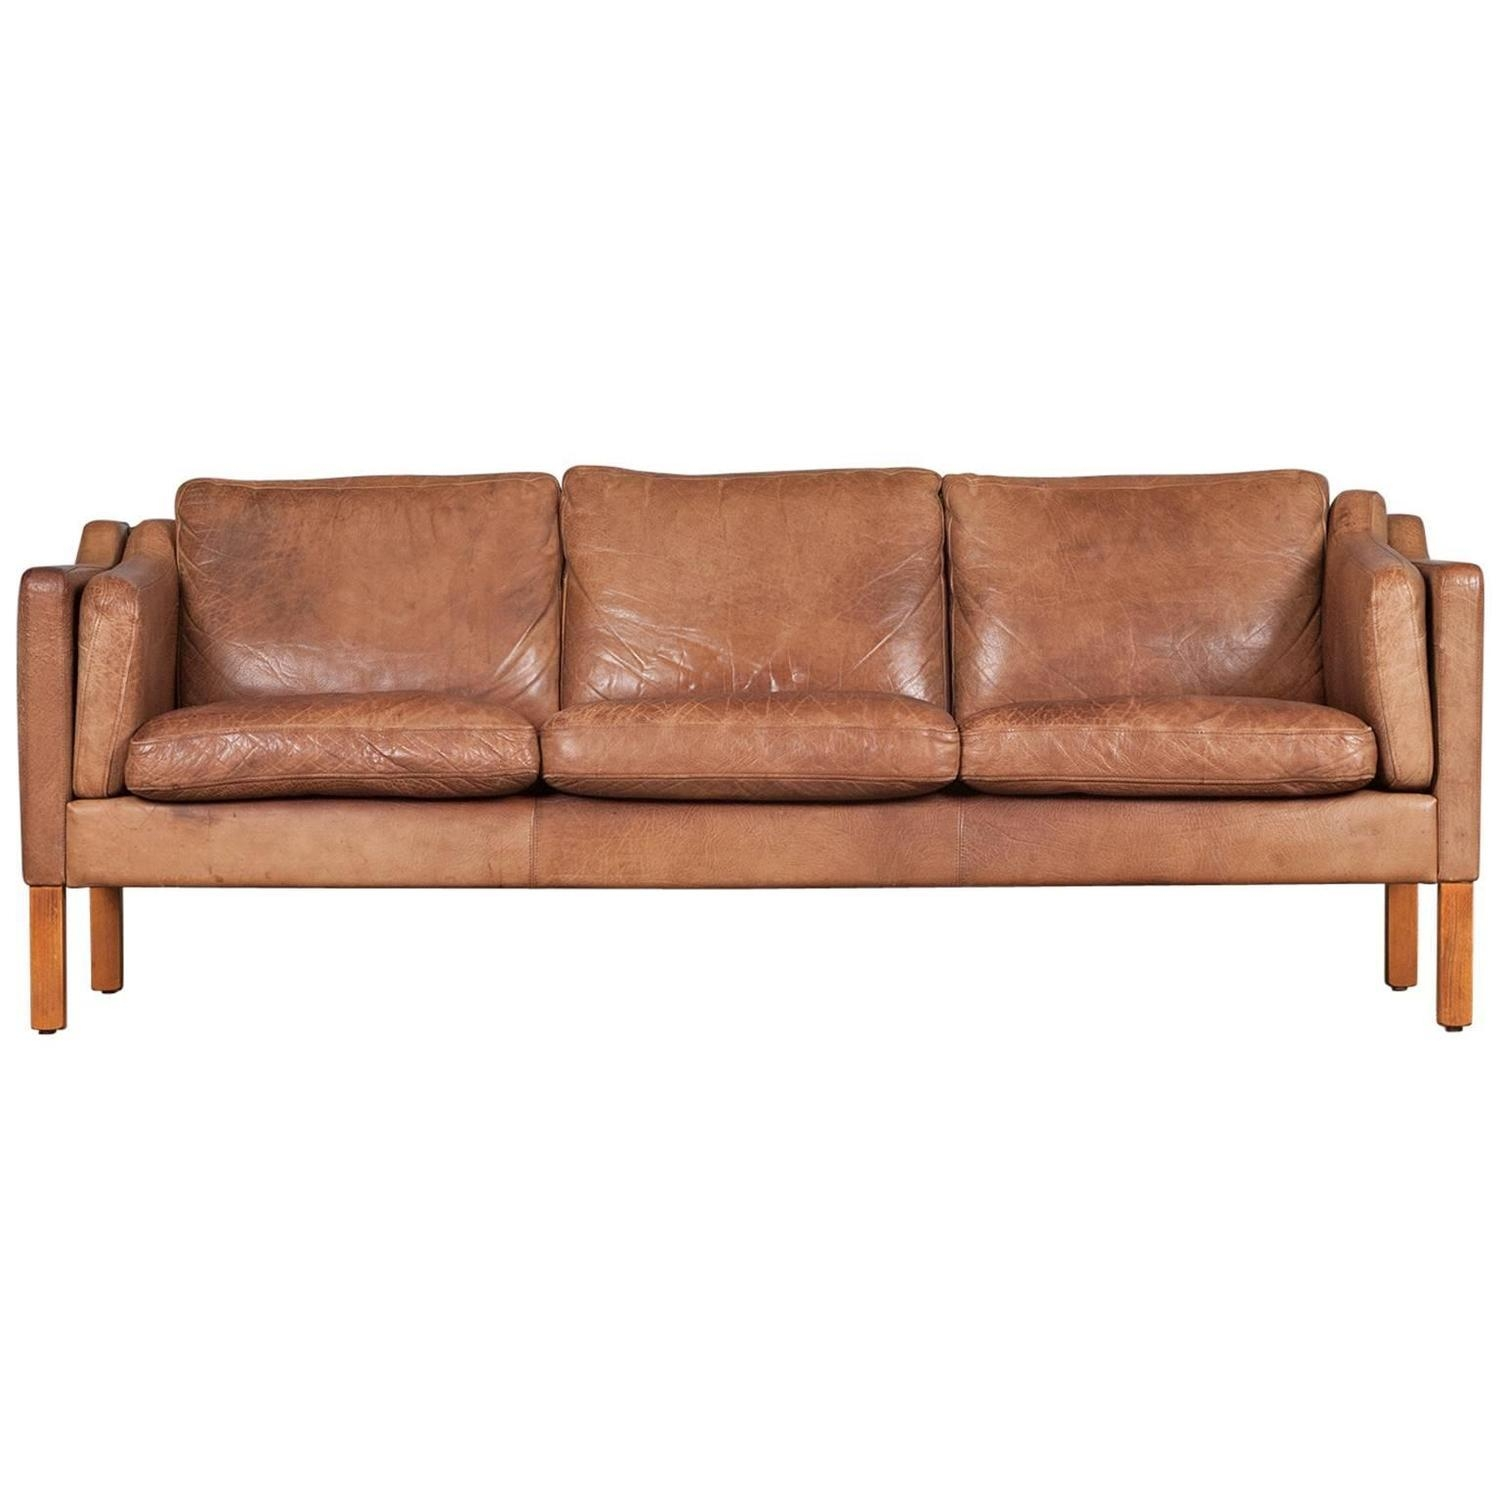 Sofas Center : Camel Leather Sofa Literarywondrous Pictures Inside Camel Colored Leather Sofas (View 8 of 20)